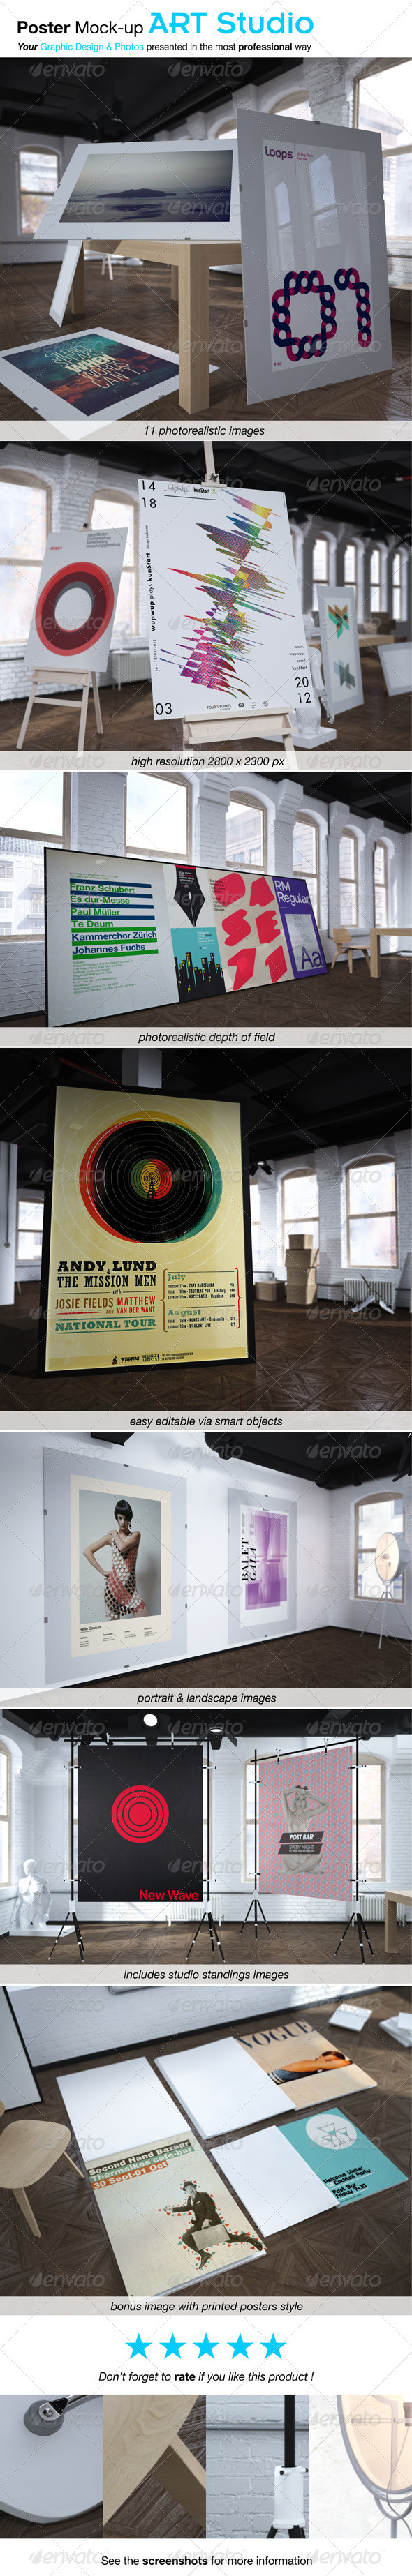 Poster Mock-up ART STUDIO - Posters Print